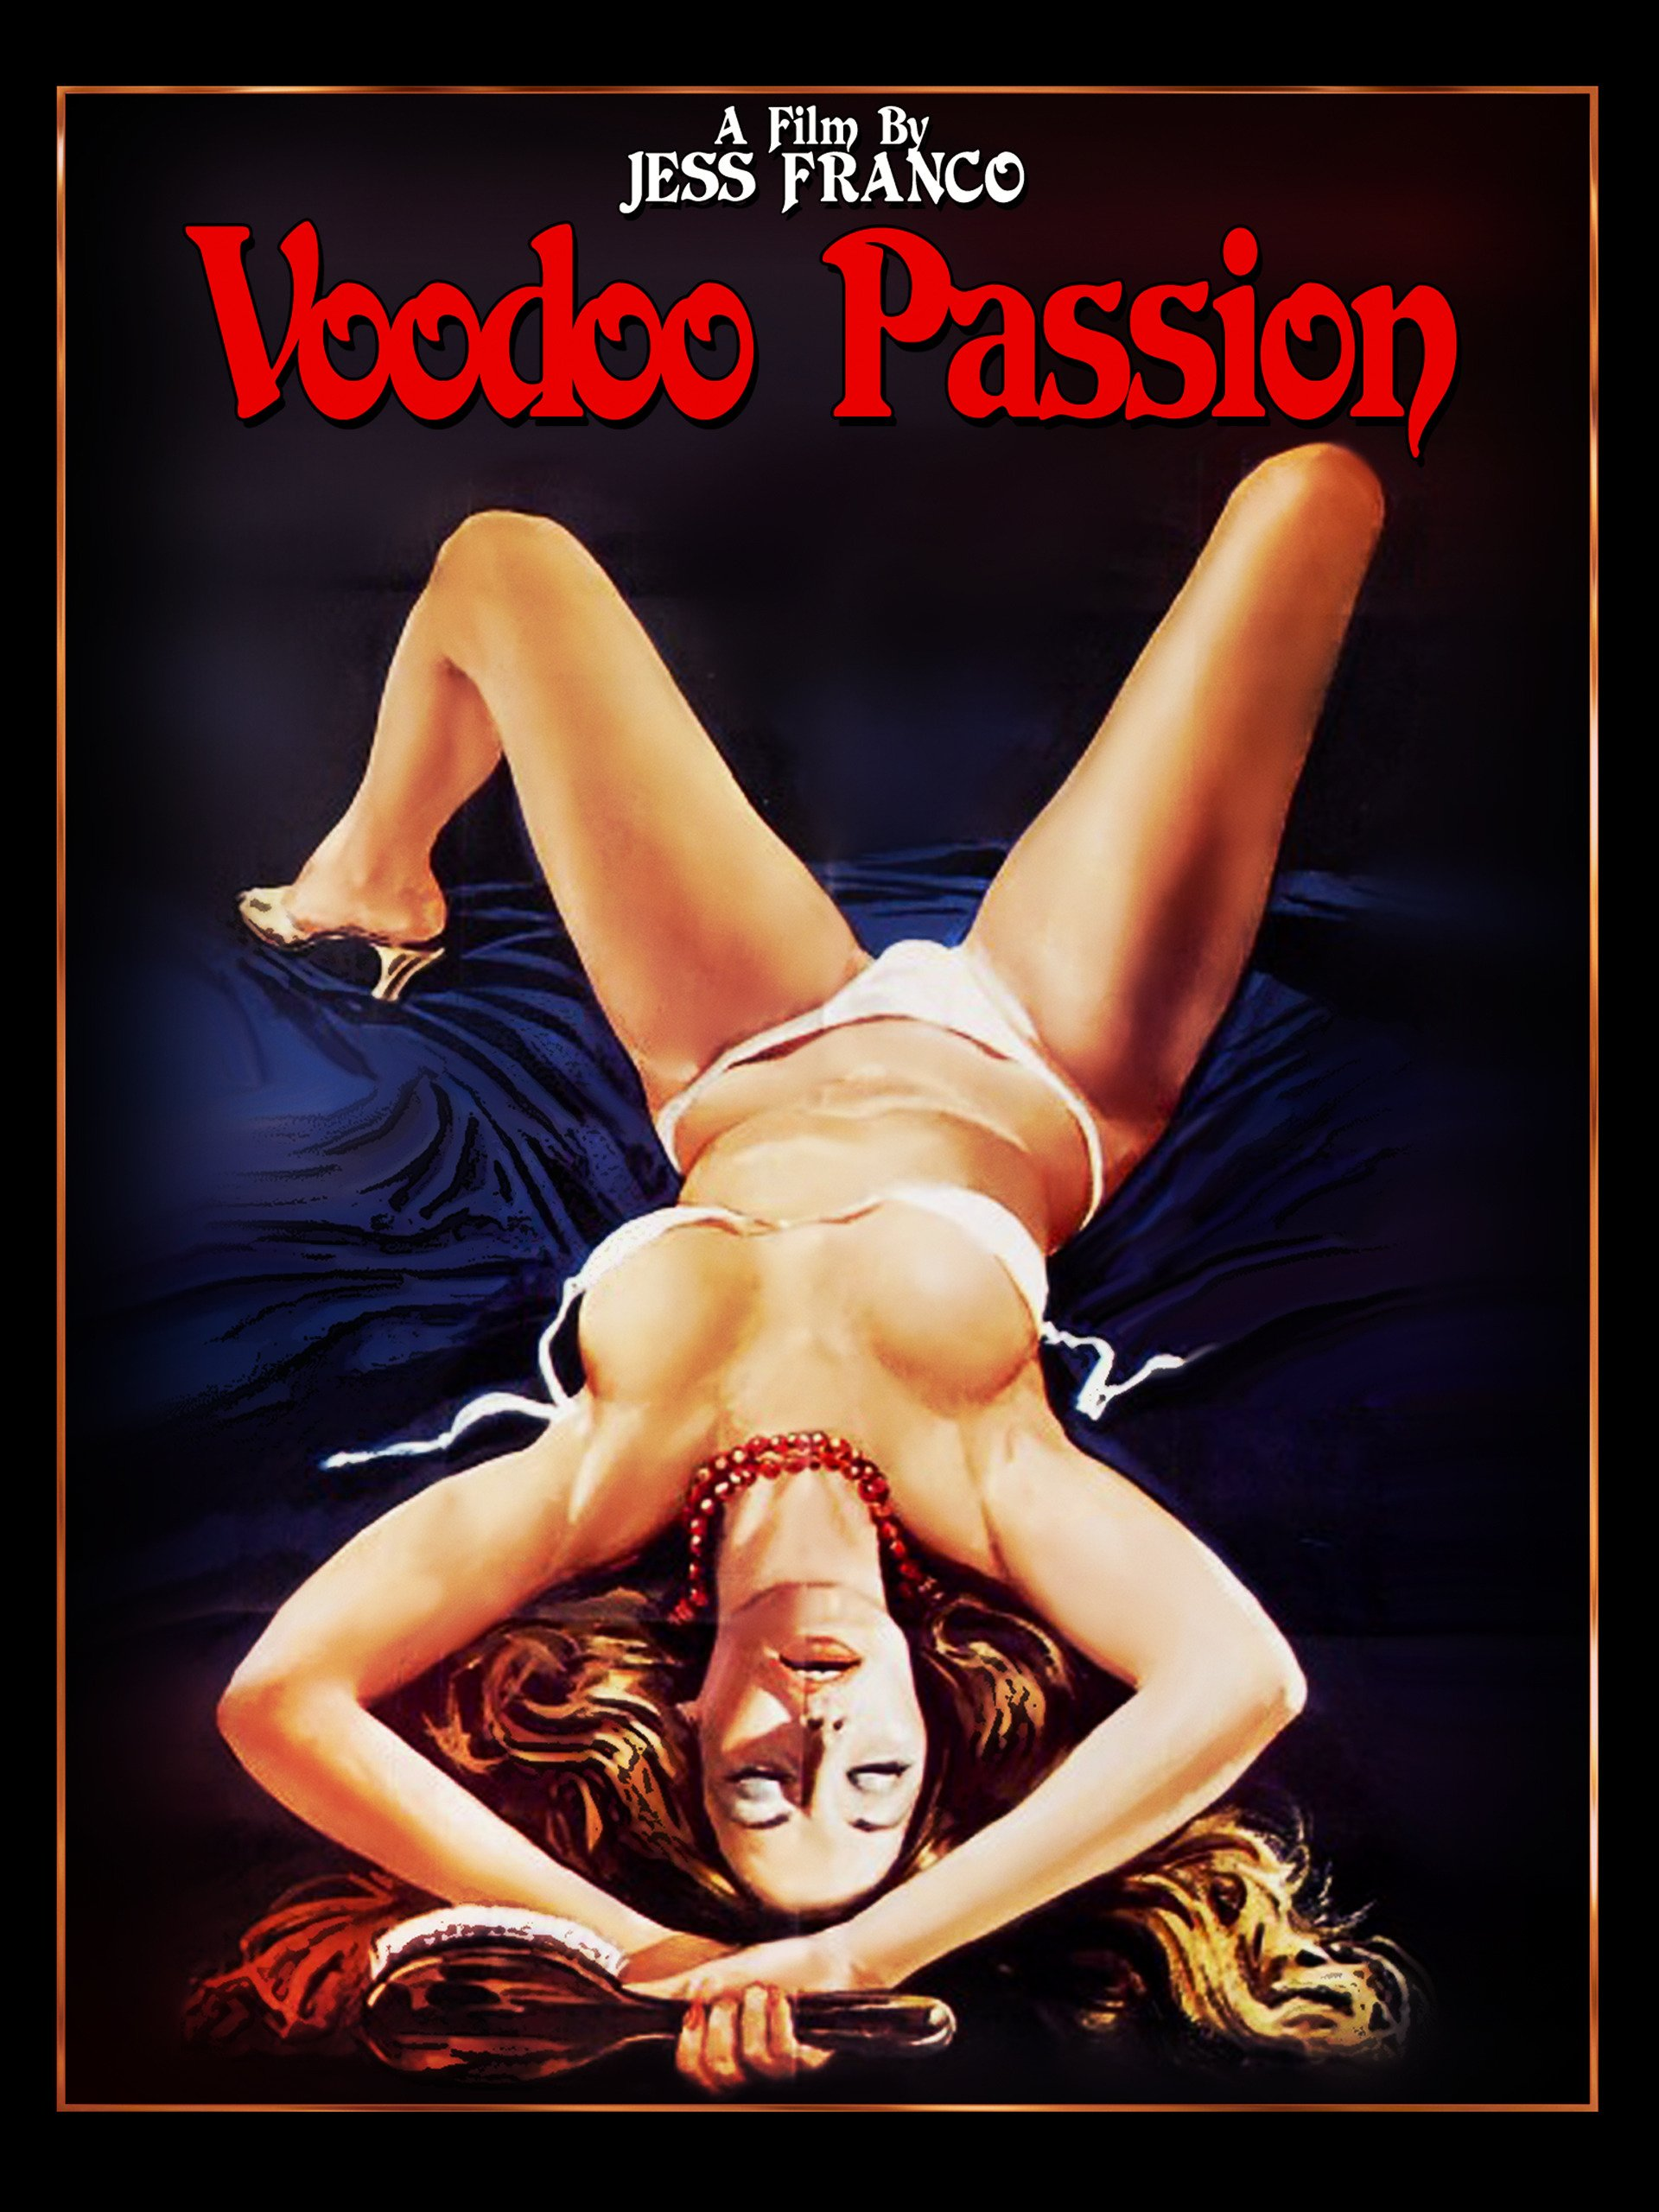 Voodoo Passion by